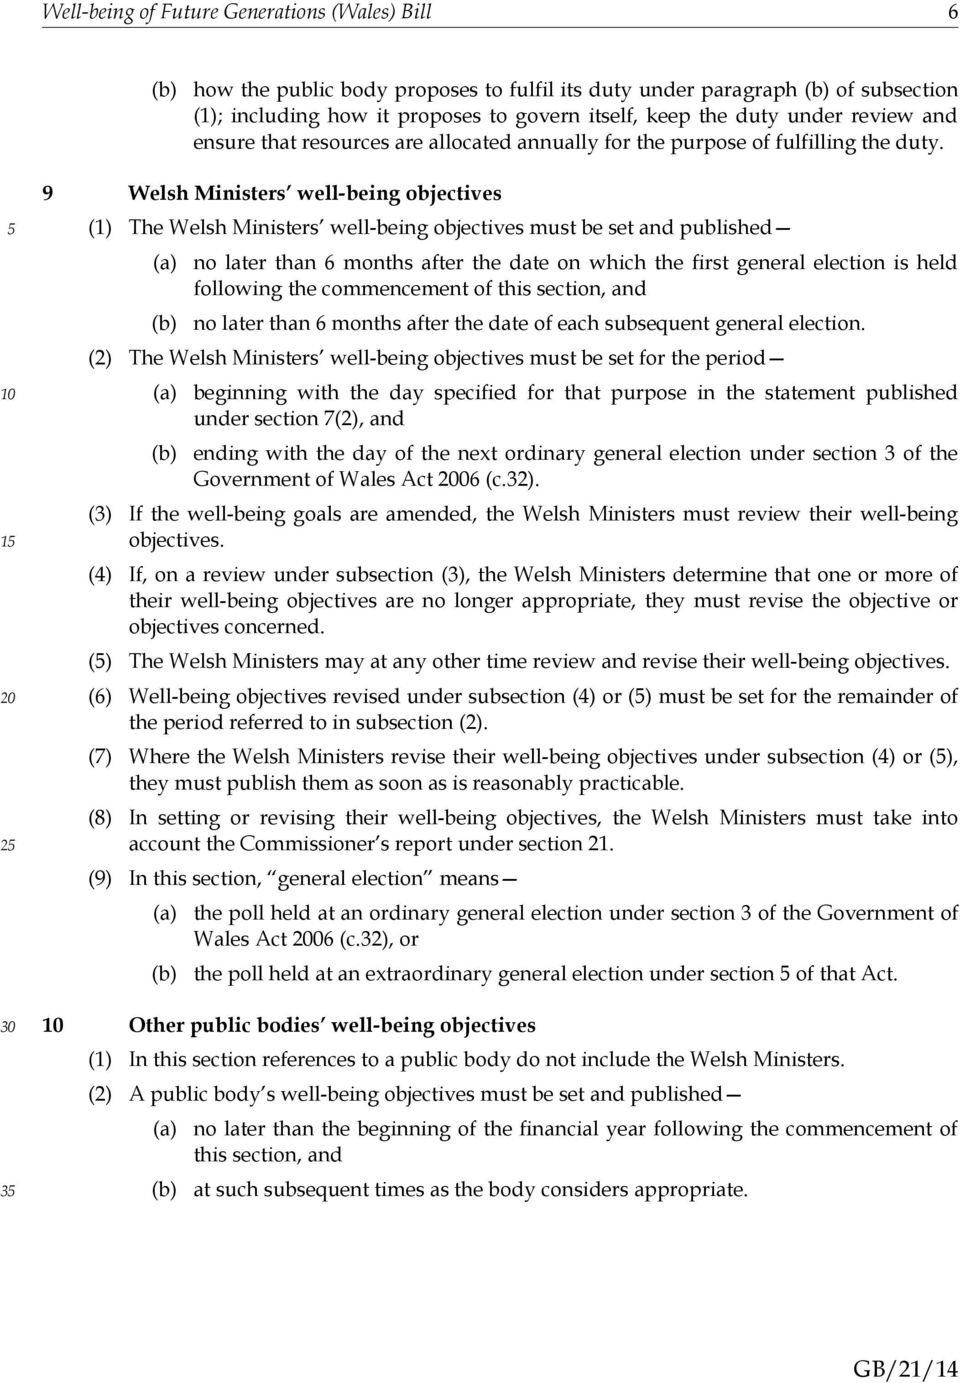 1 2 3 9 Welsh Ministers well-being objectives (1) The Welsh Ministers well-being objectives must be set and published no later than 6 months after the date on which the first general election is held